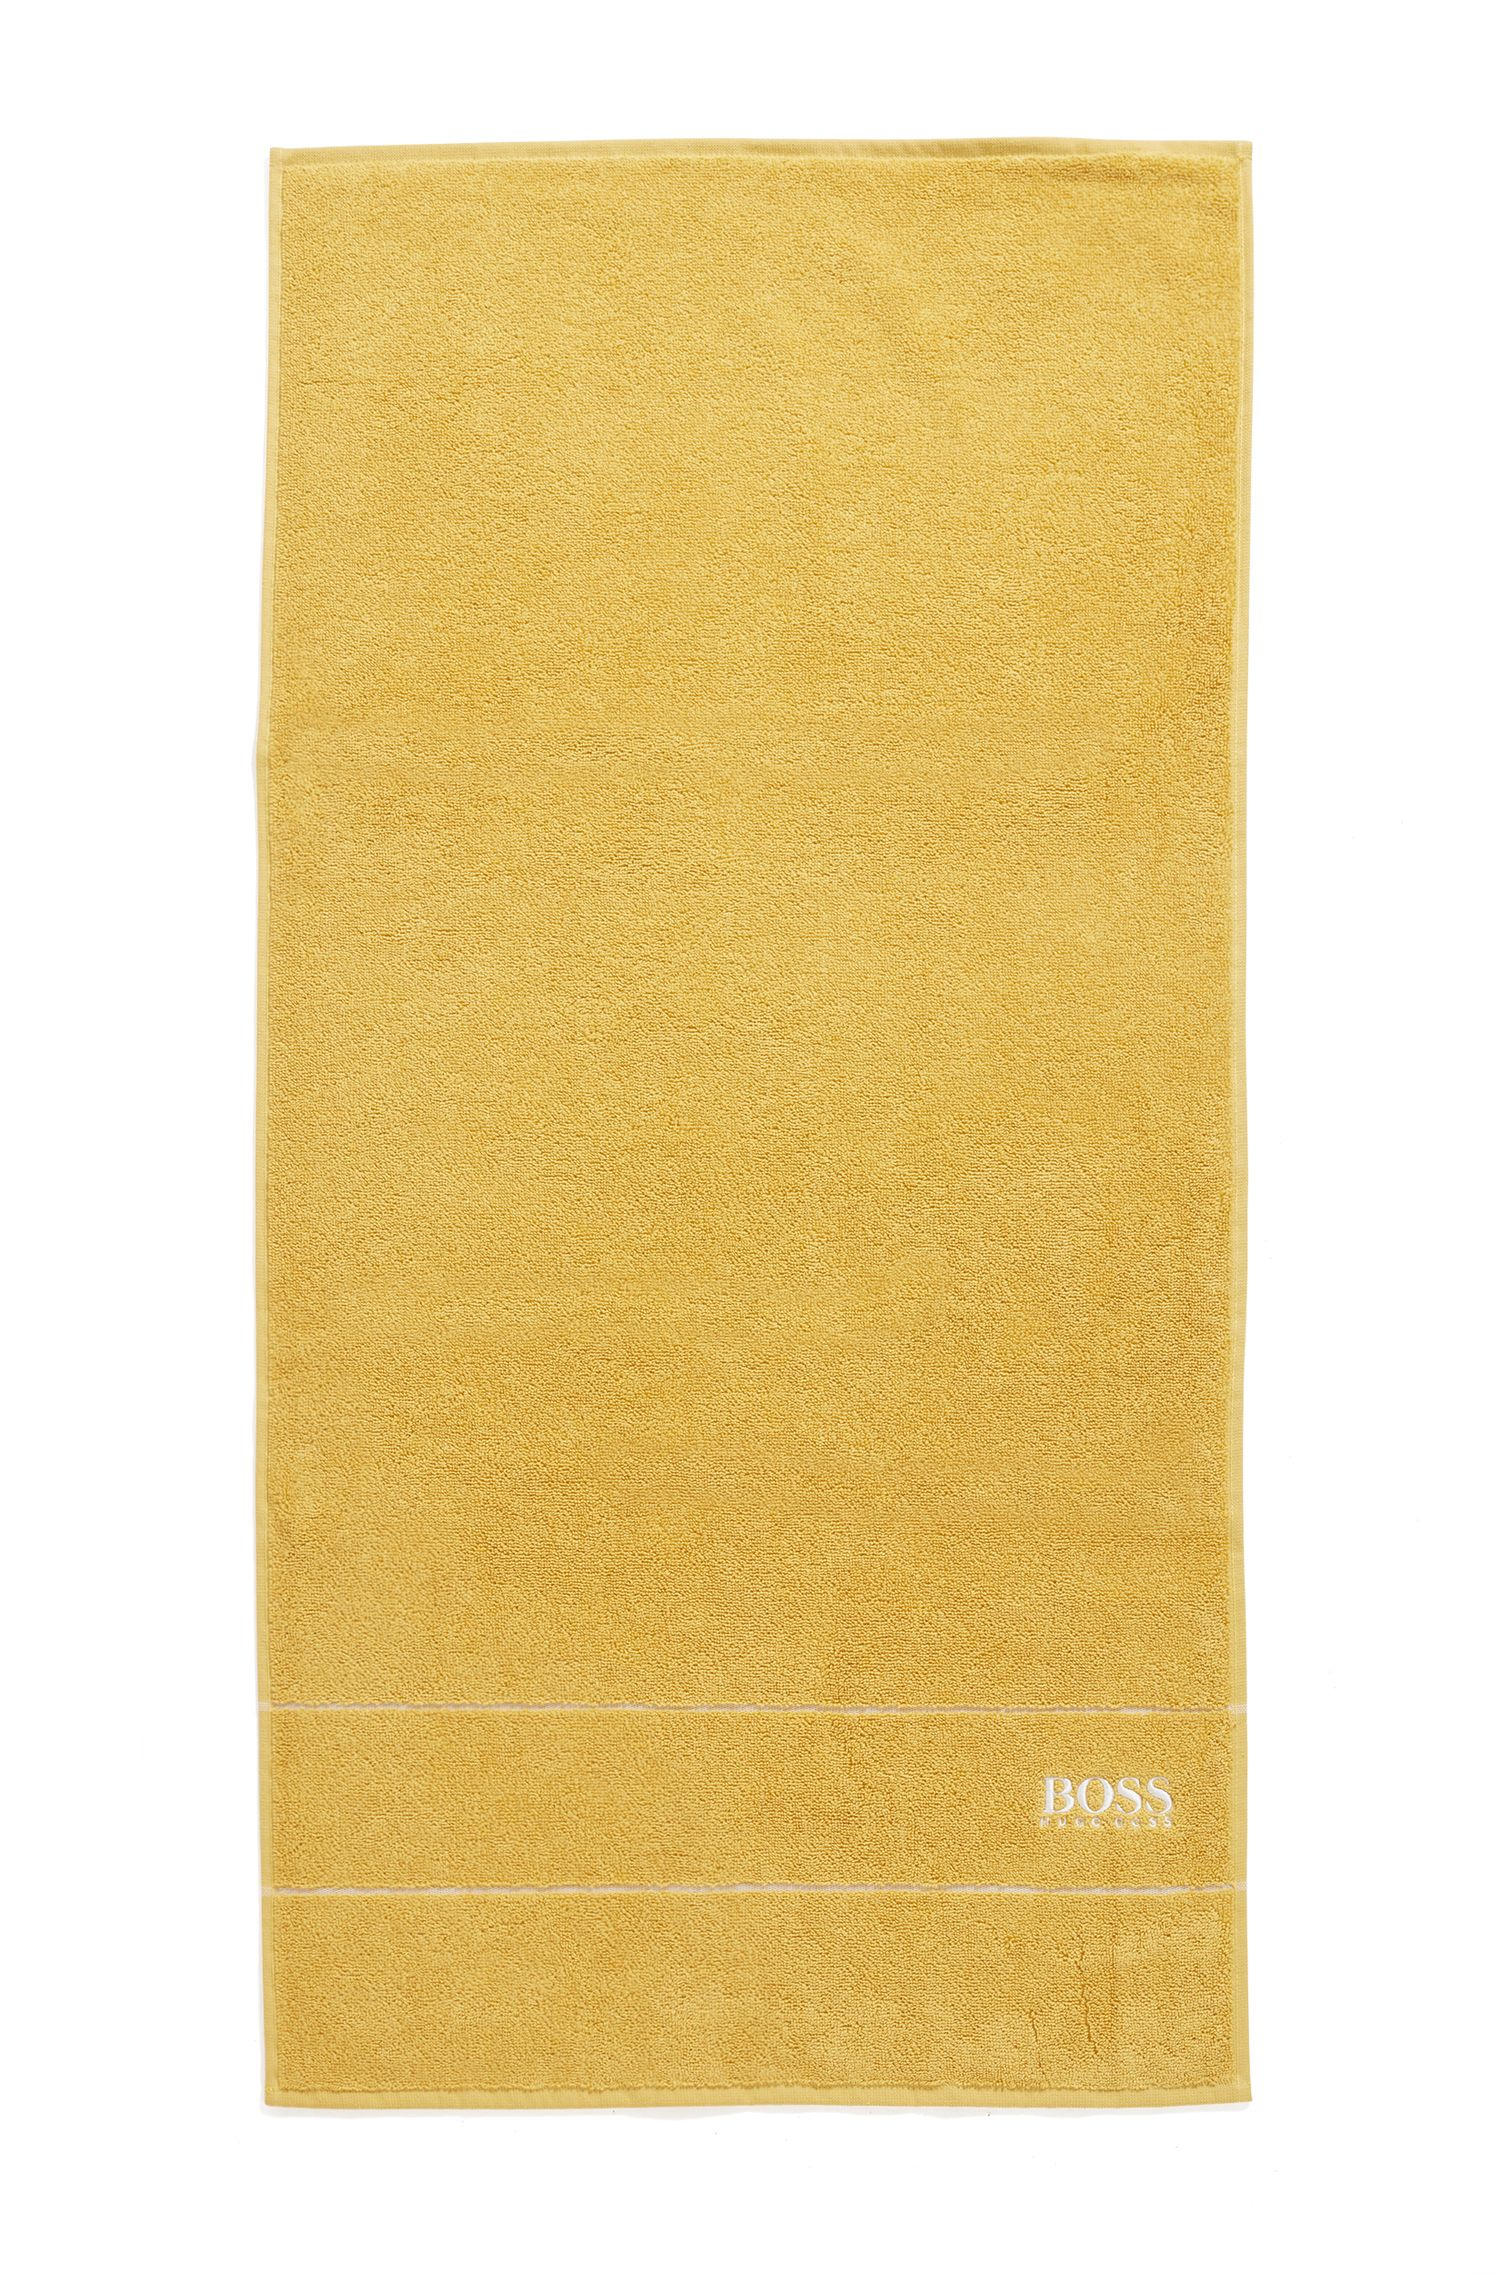 Finest Egyptian cotton hand towel with logo border, Gold